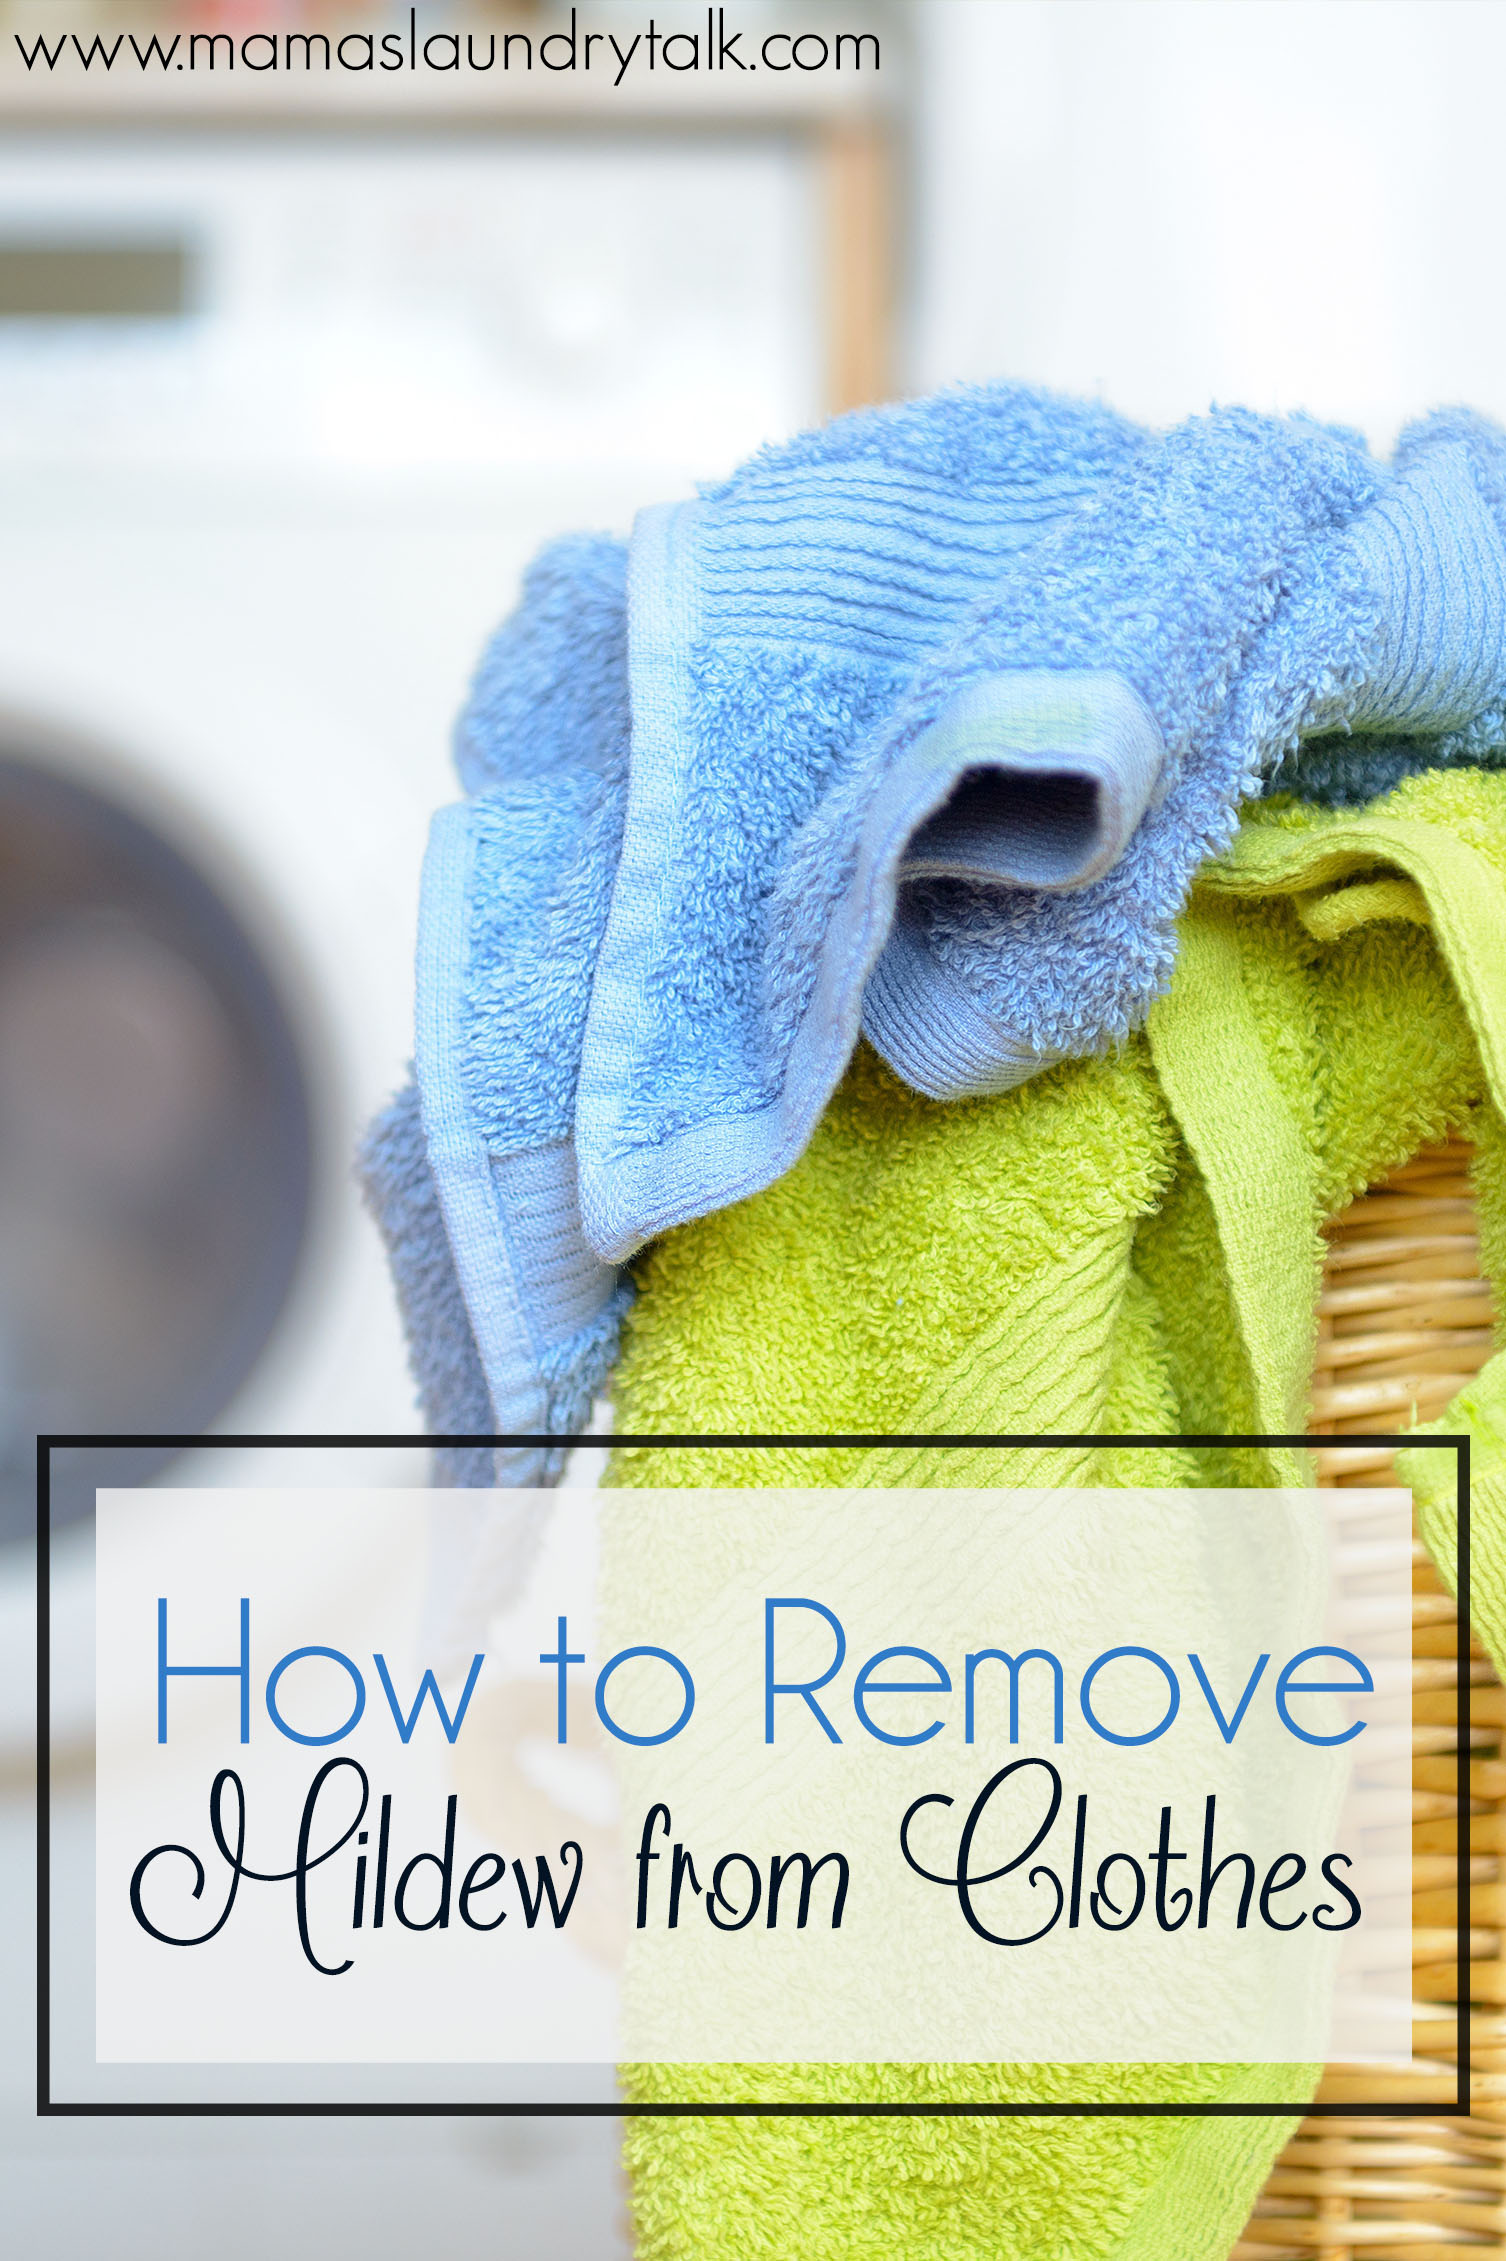 How to Remove Mildew from Clothes